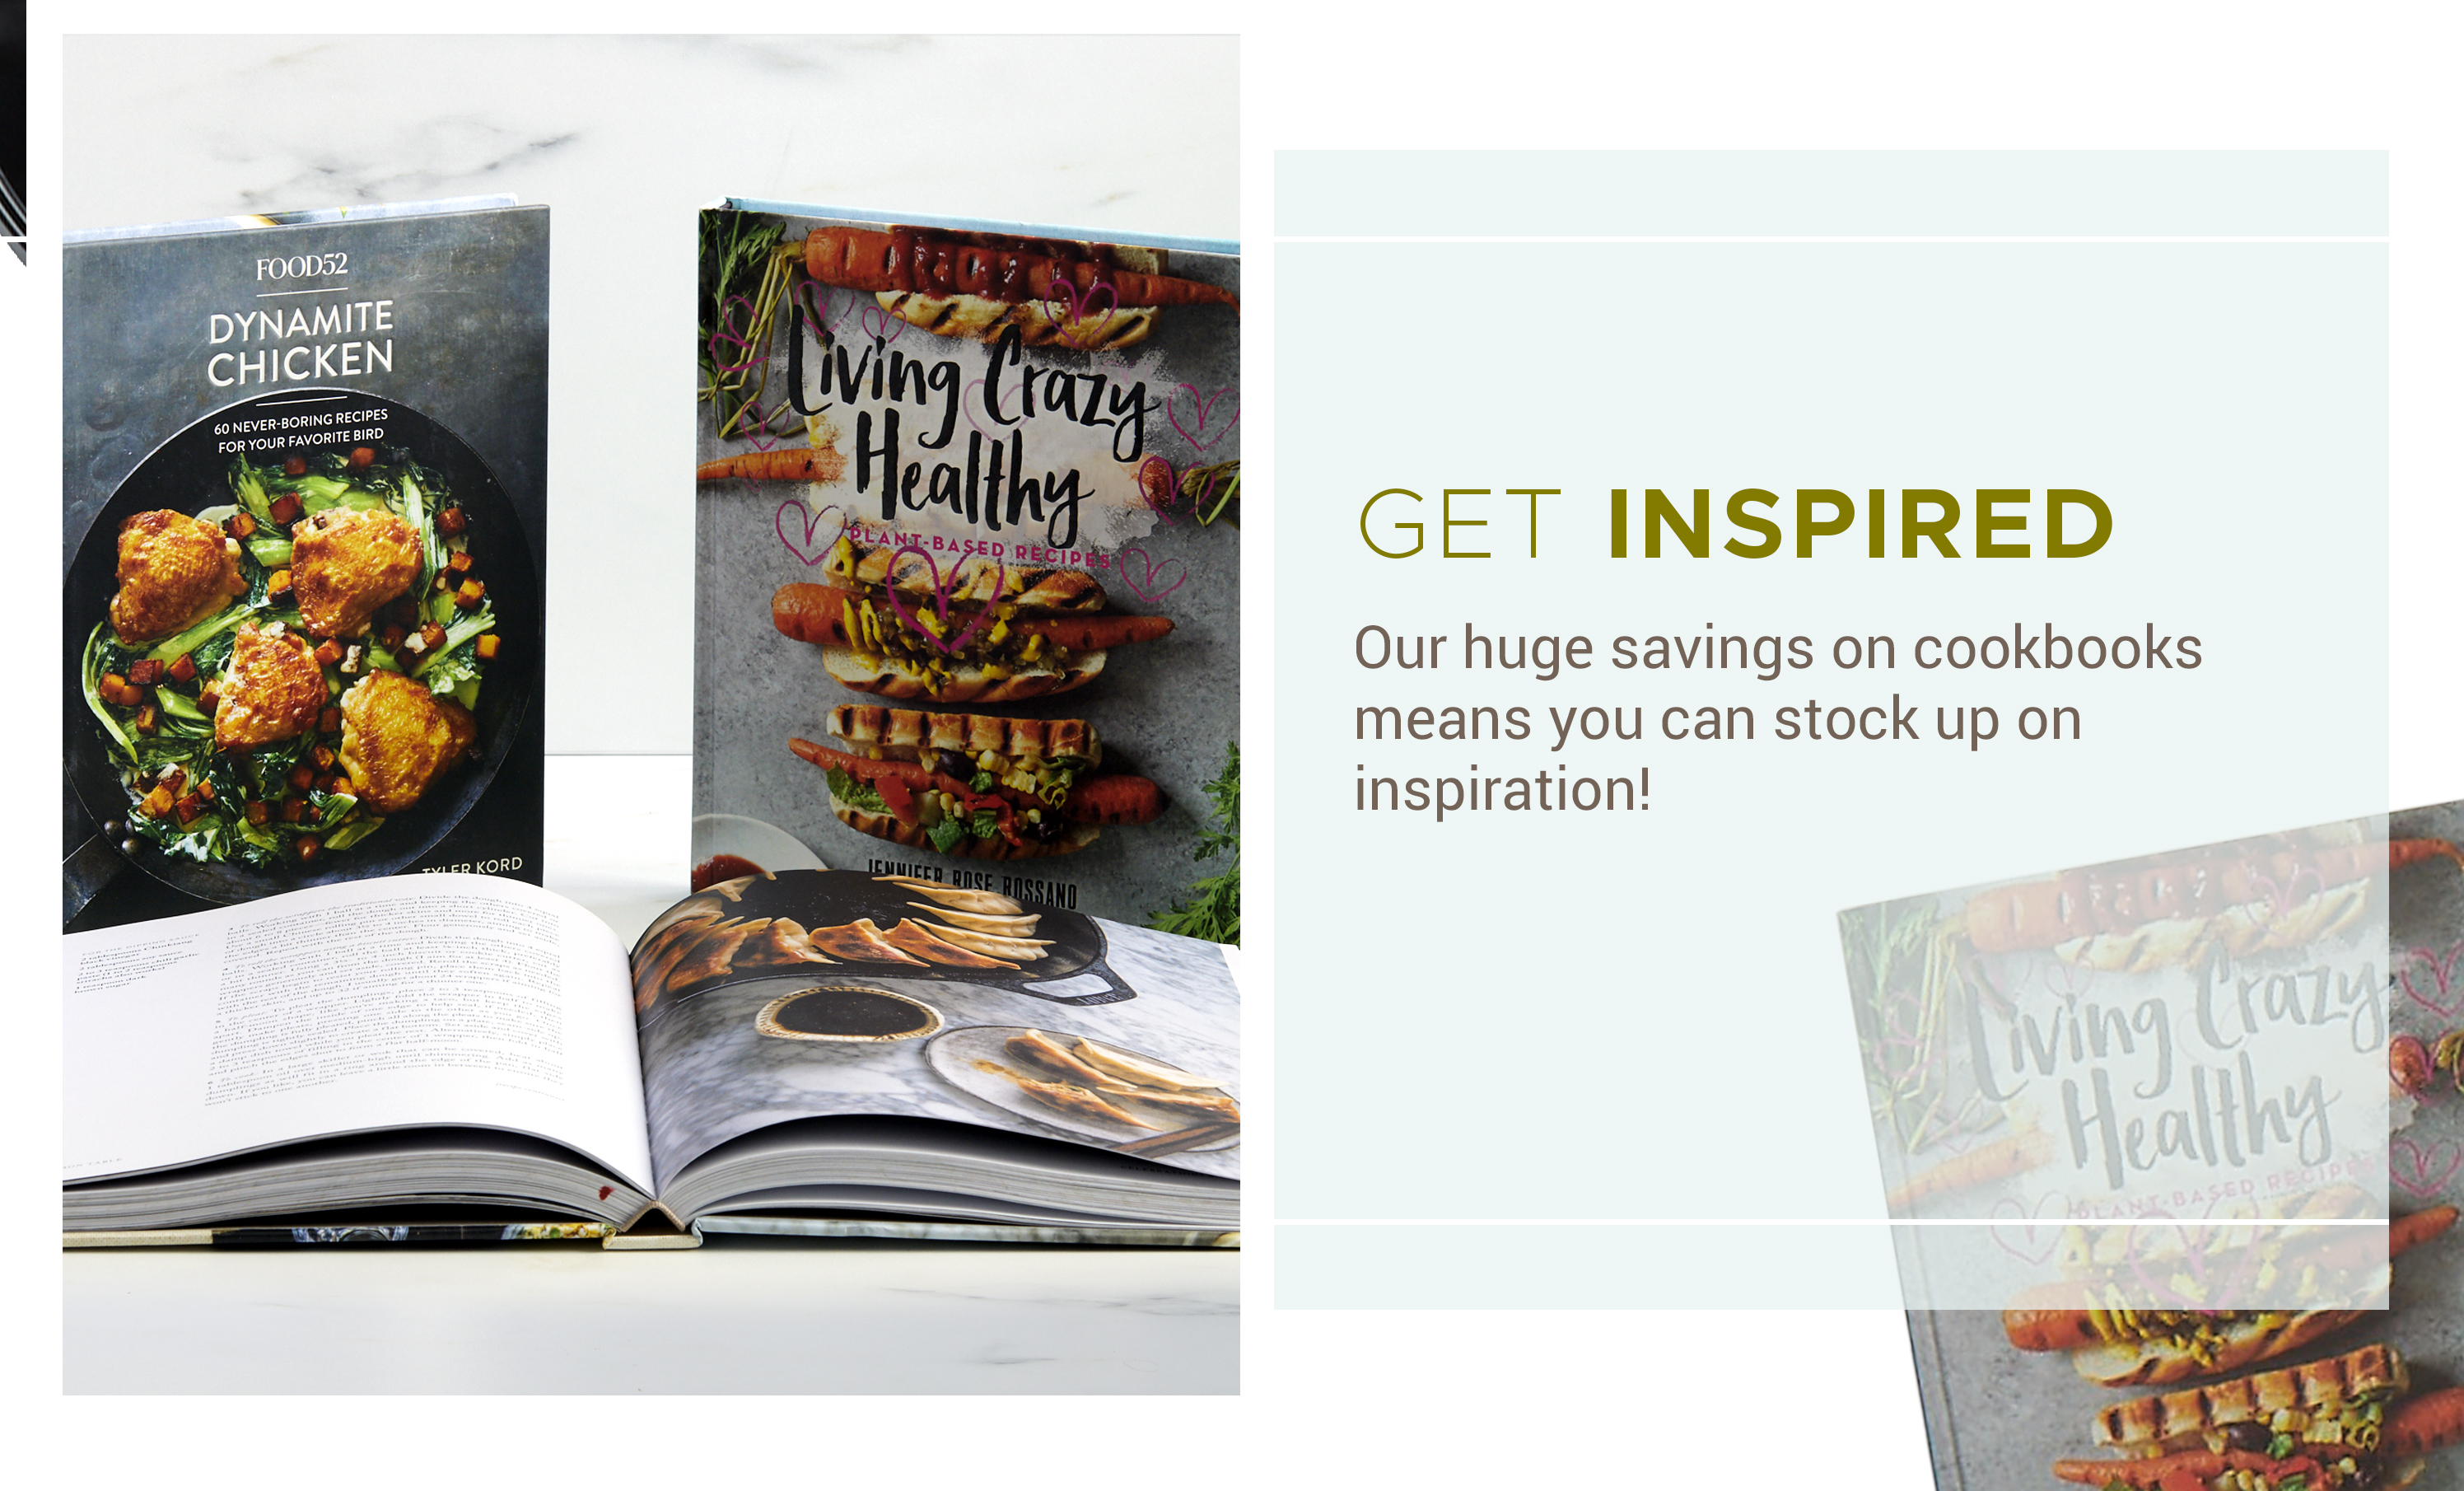 Get Inspired - Our huge savings on cookbooks means you can stock up on inspiration!